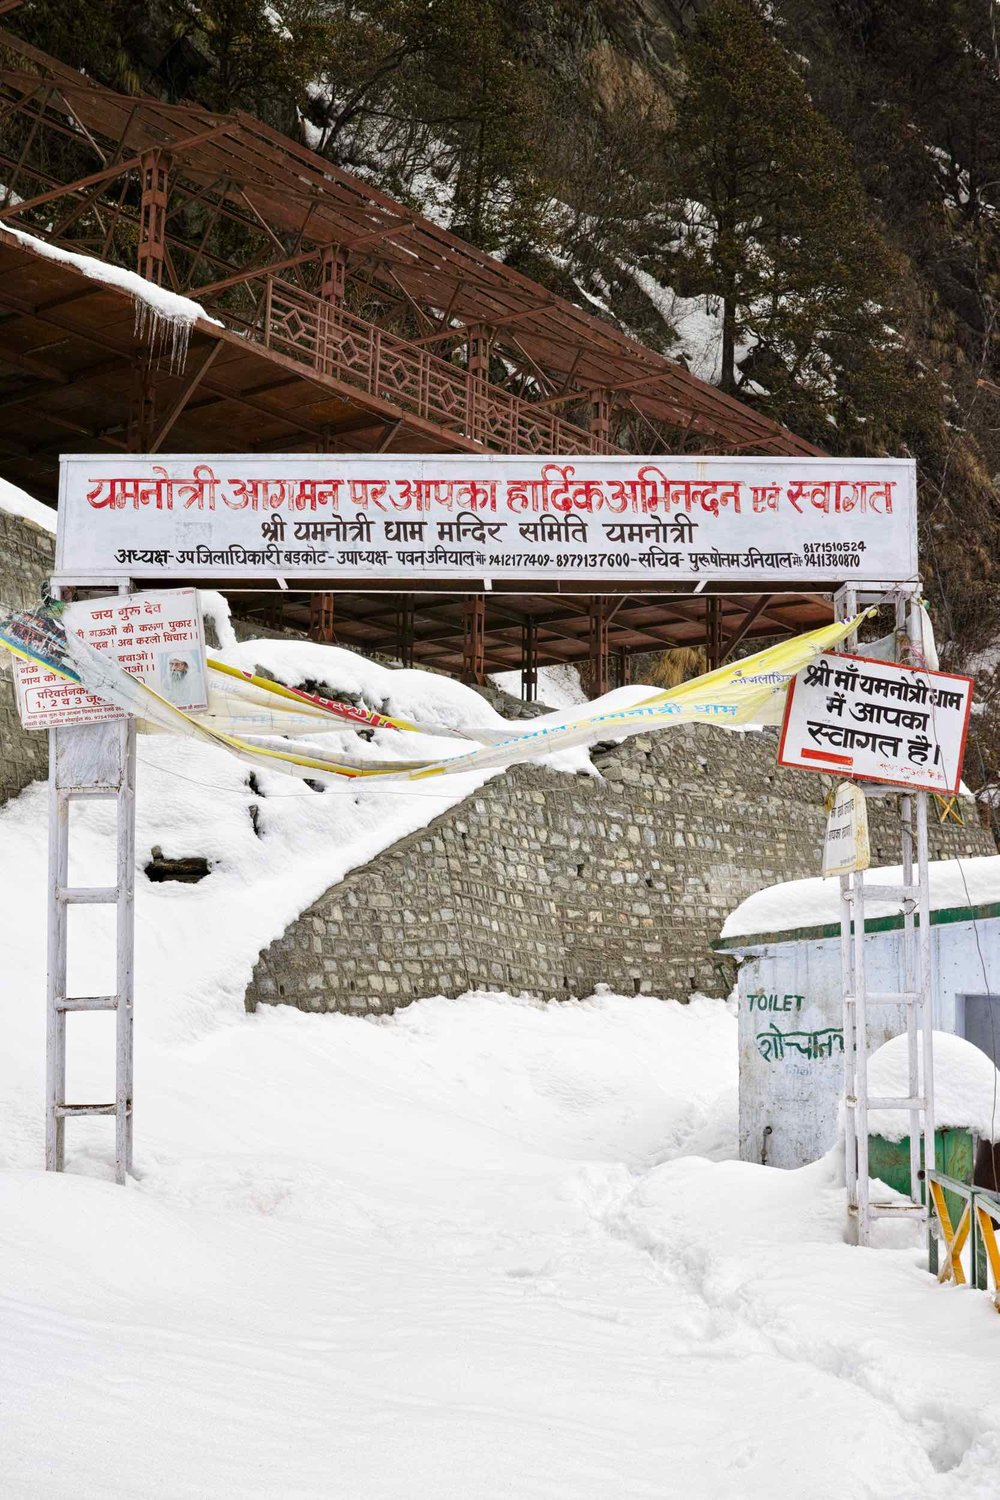 Welcome to Yamunotri! The festering open toilet makes a splendid welcome sight. Sigh!